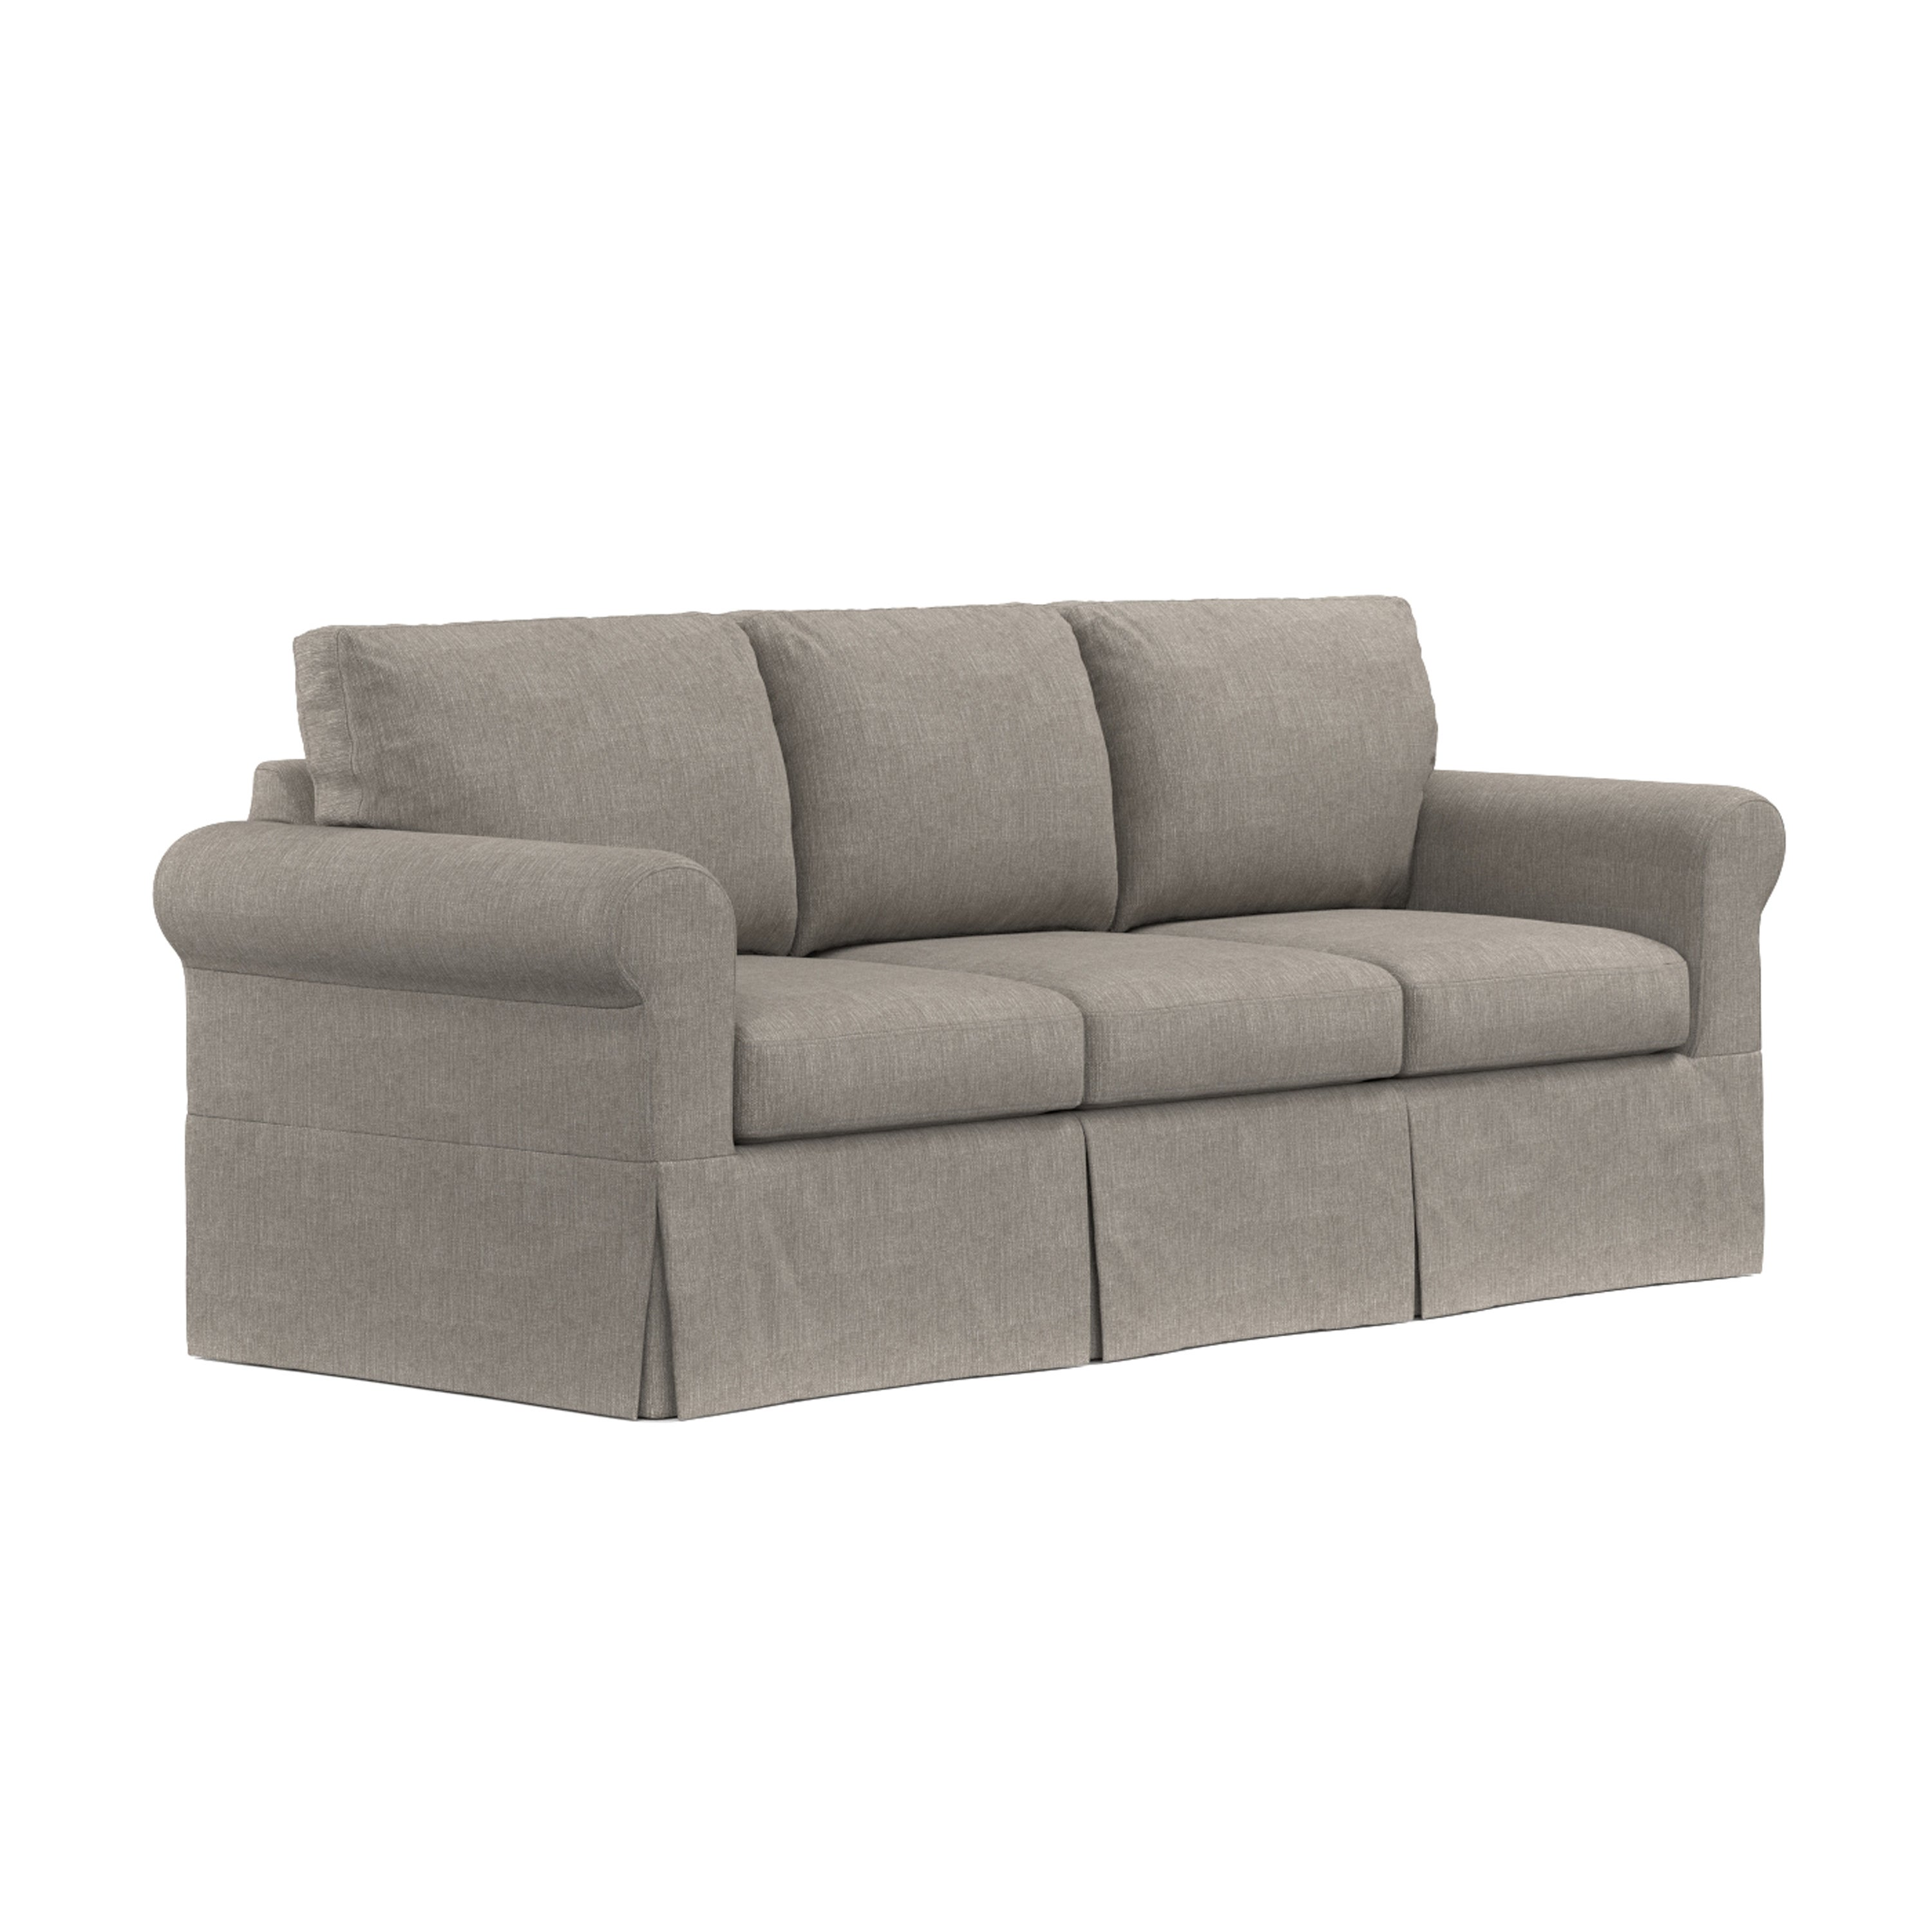 Handy Living Undercover Custom Bella Sofast Sofa With Skirted Slipcover On Free Shipping Today 12818175